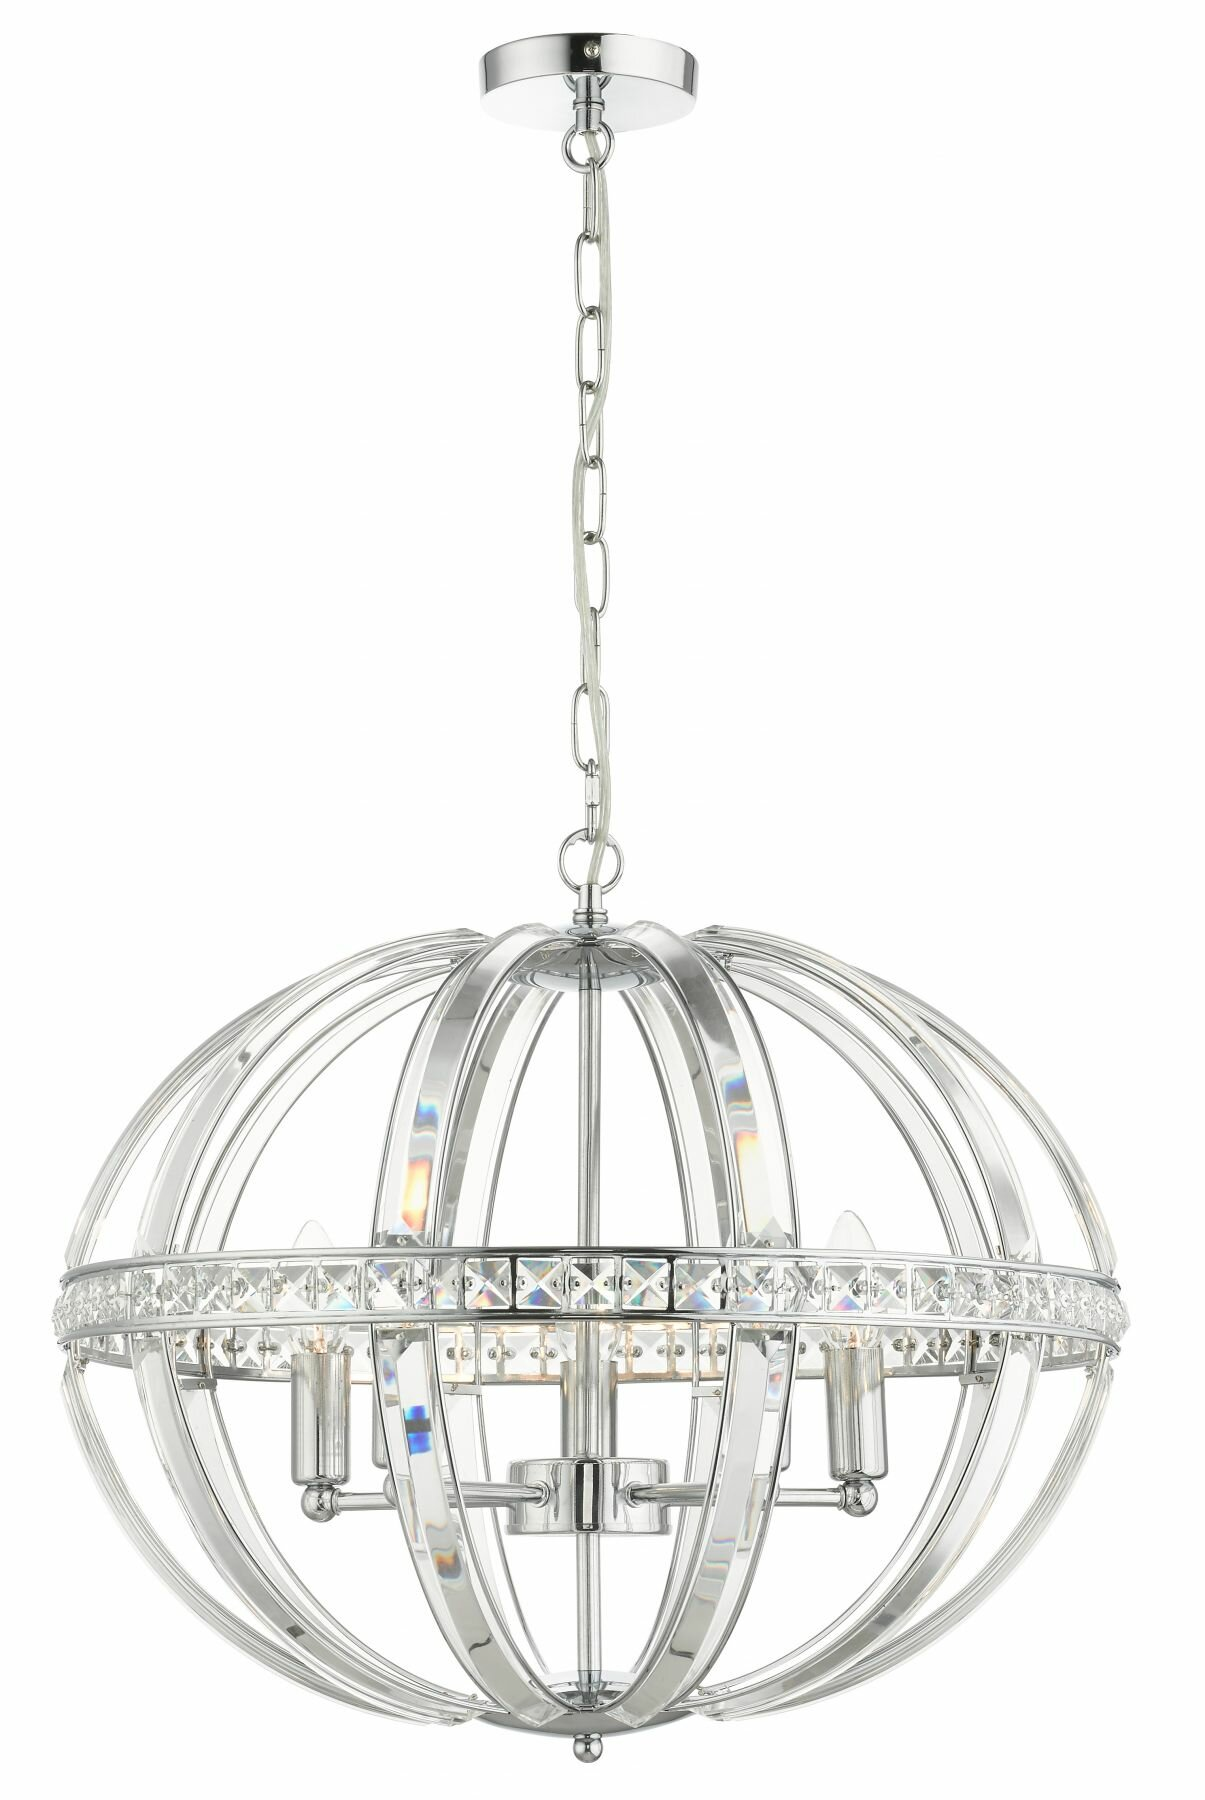 Willa Arlo Interiors Venus 5 Light Crystal Globe Pendant Wayfair Co Uk